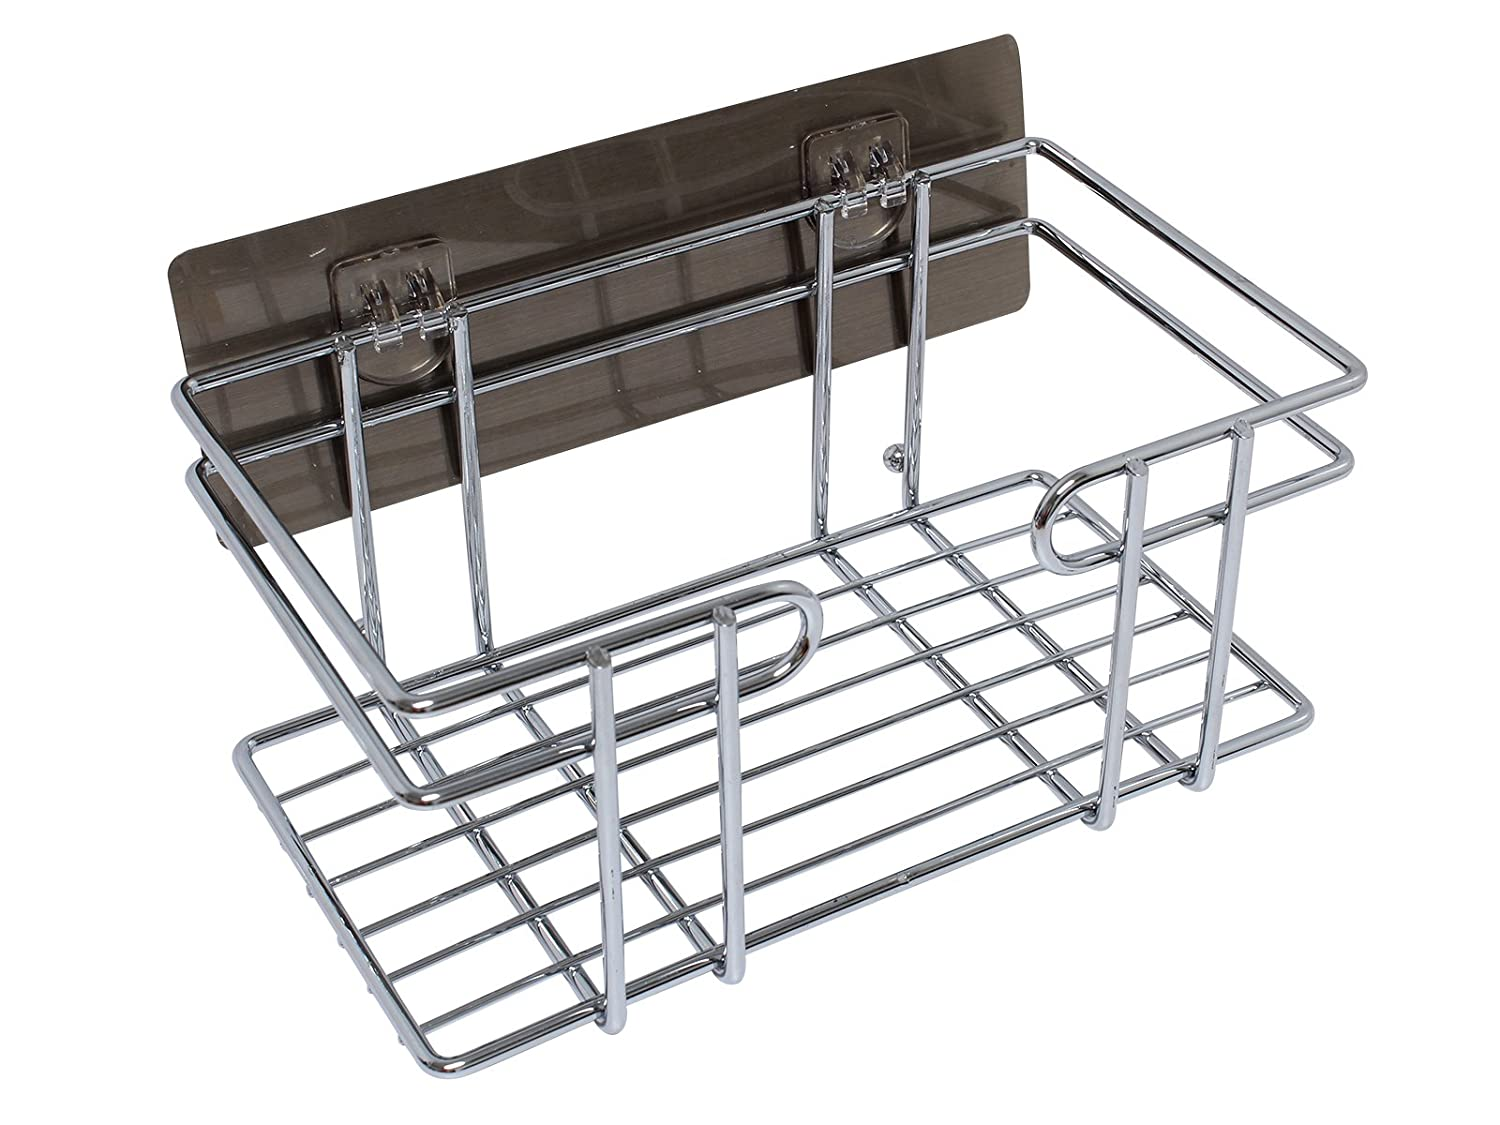 "Wall Mount Storage Basket - Stainless Steel Industrial Storage Organizer Rack - Adhesive Sticker - Laundry Kitchen Bathroom (9.25"" x 5.25"" x 4"") Royal Brands"